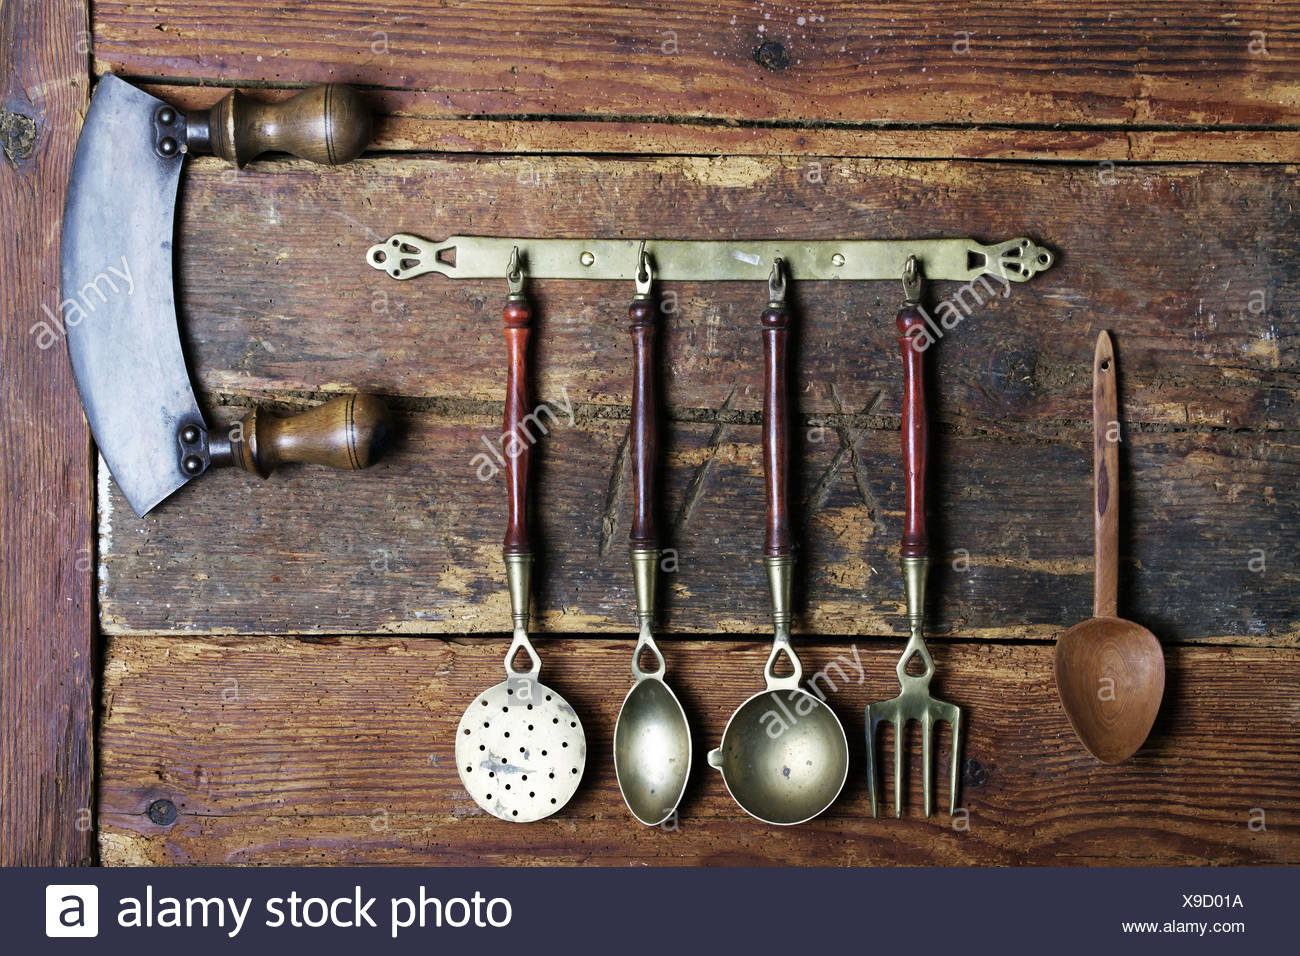 Old Kitchen Utensils Made Of Brass Hanging From A Bar In Front Of A Rustic  Wooden Wall